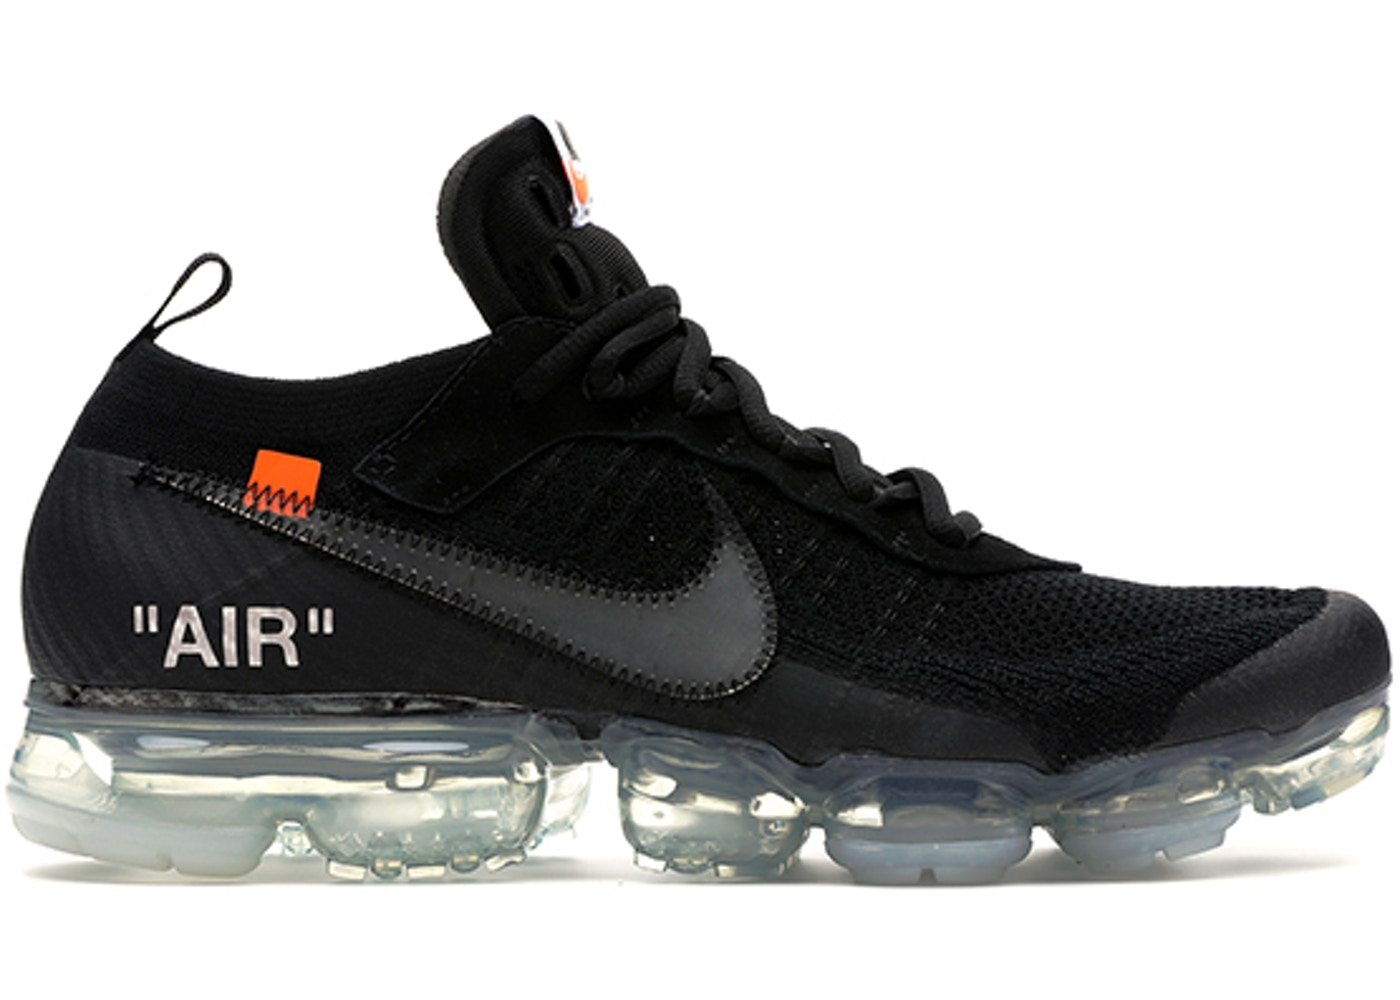 b44862a0 Air VaporMax Off-White Black - AA3831-002